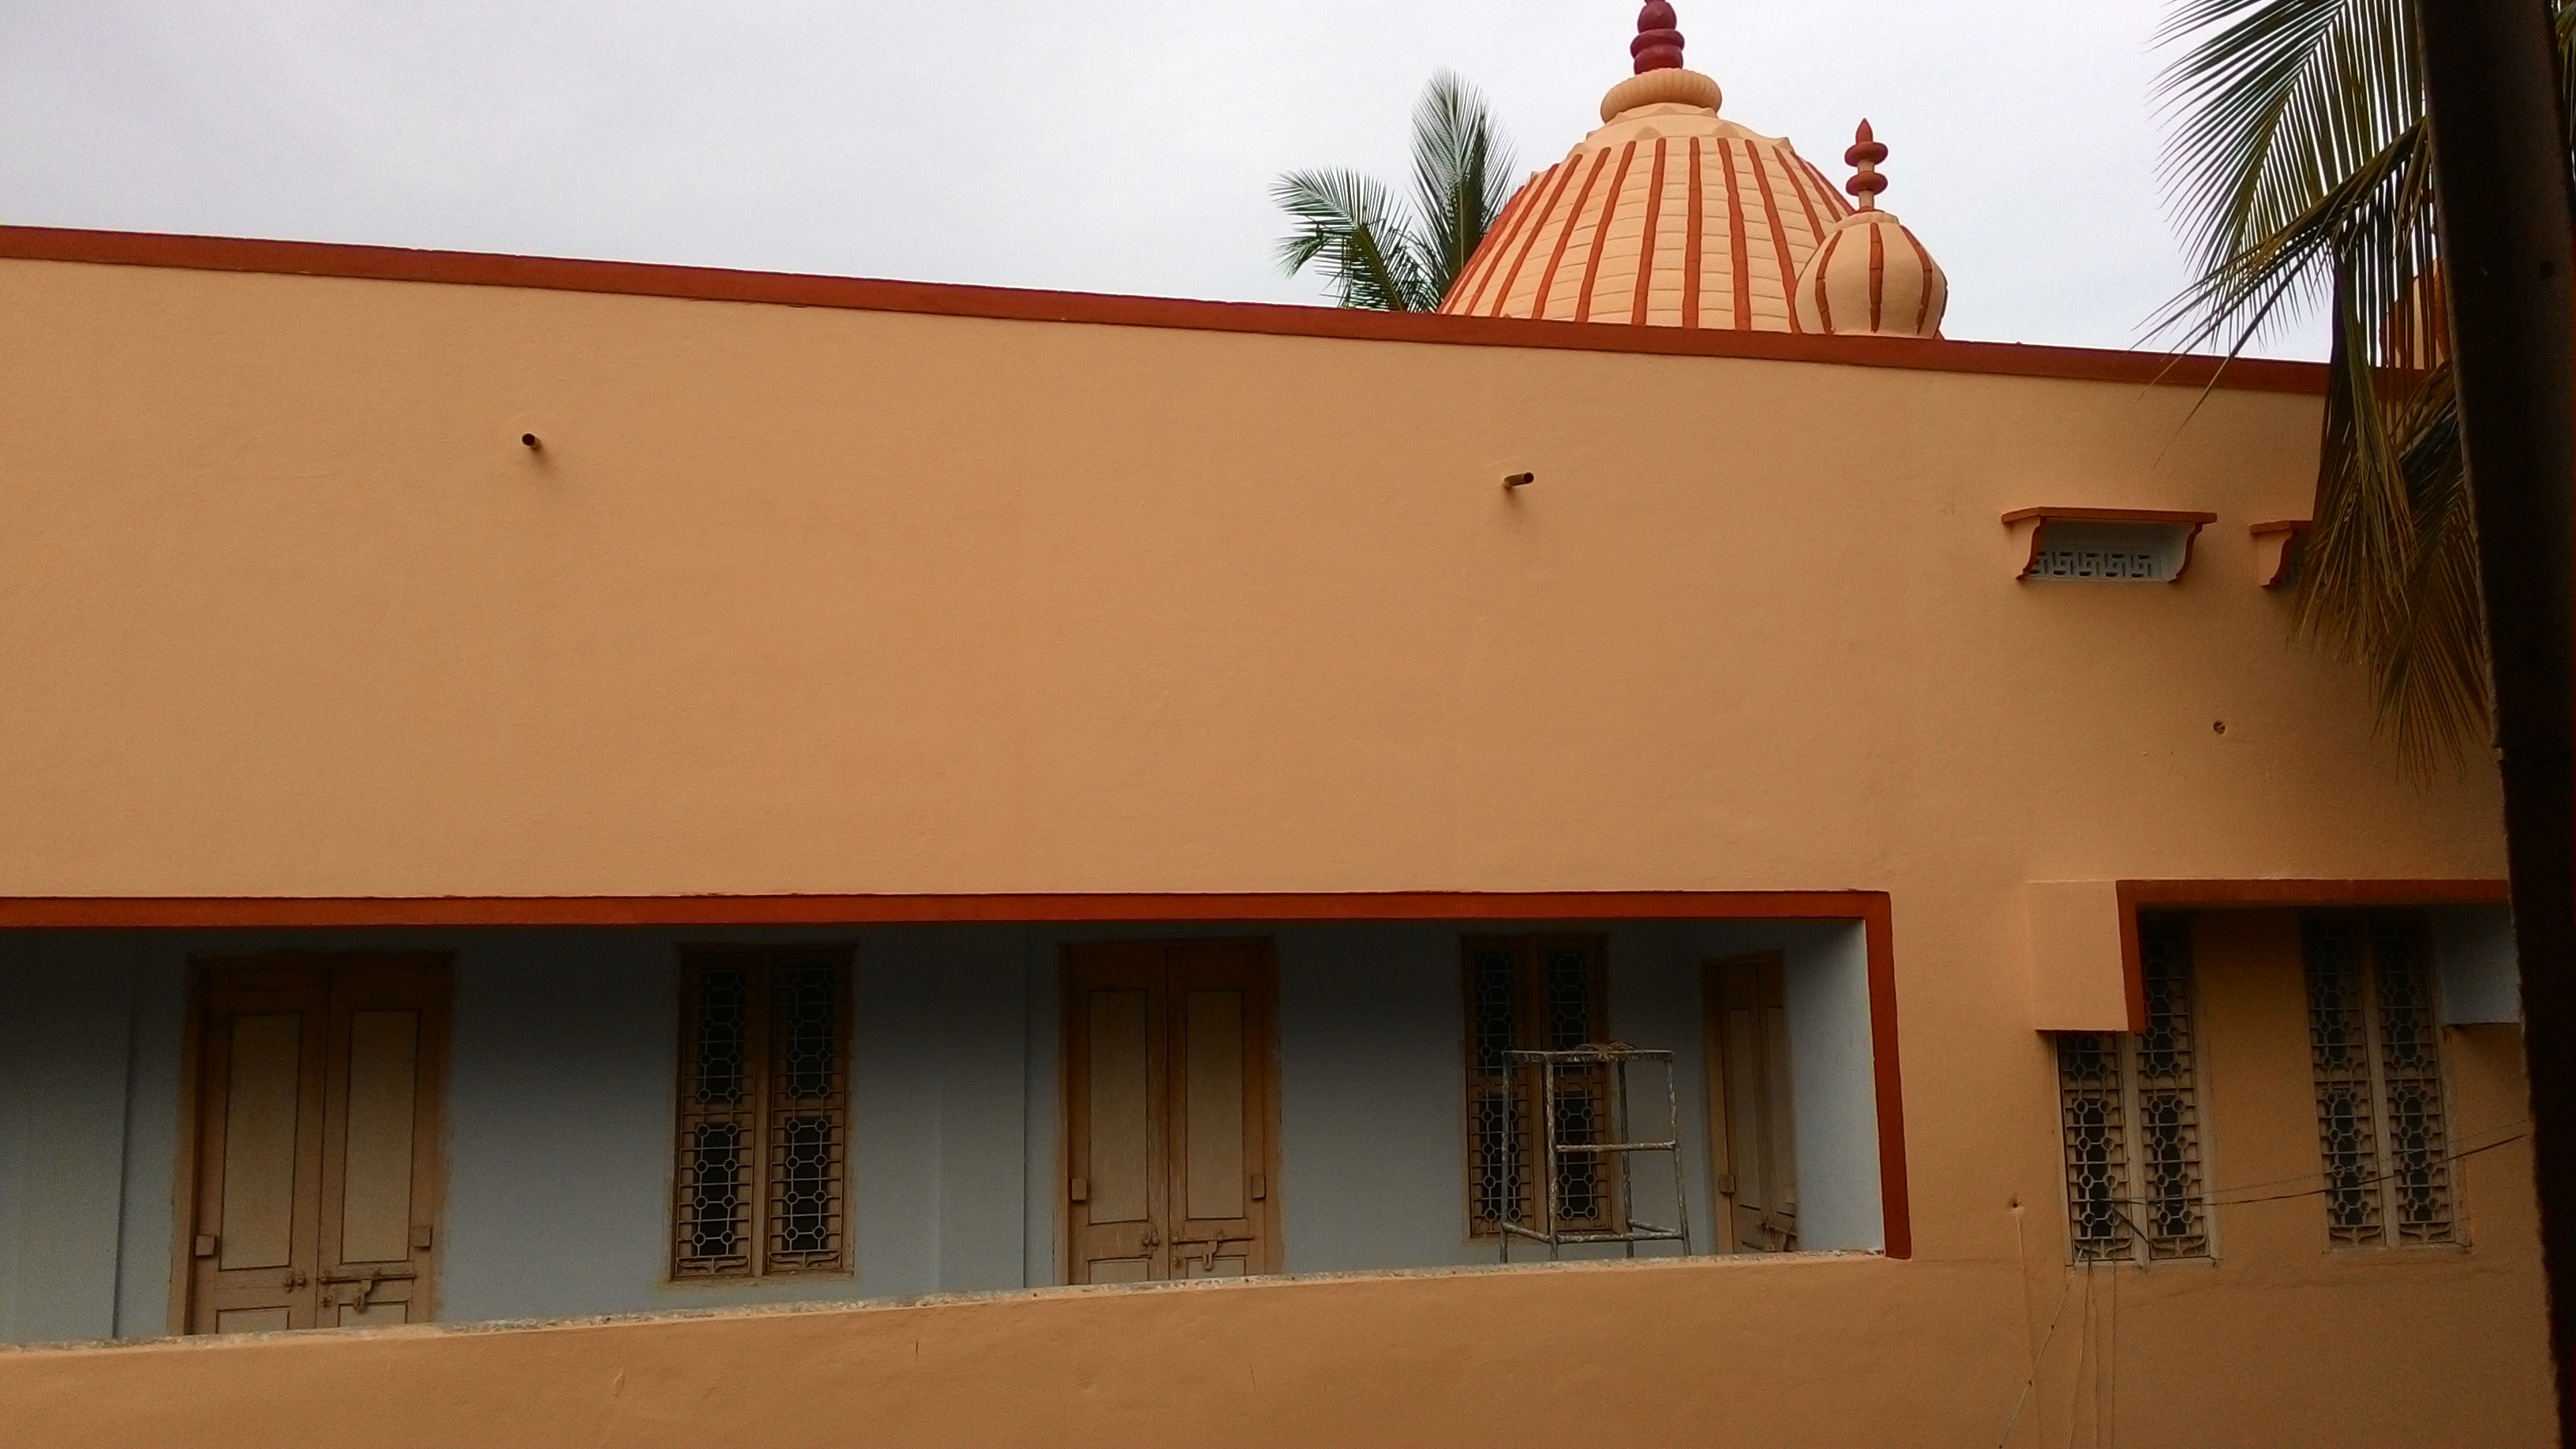 View of the Temple